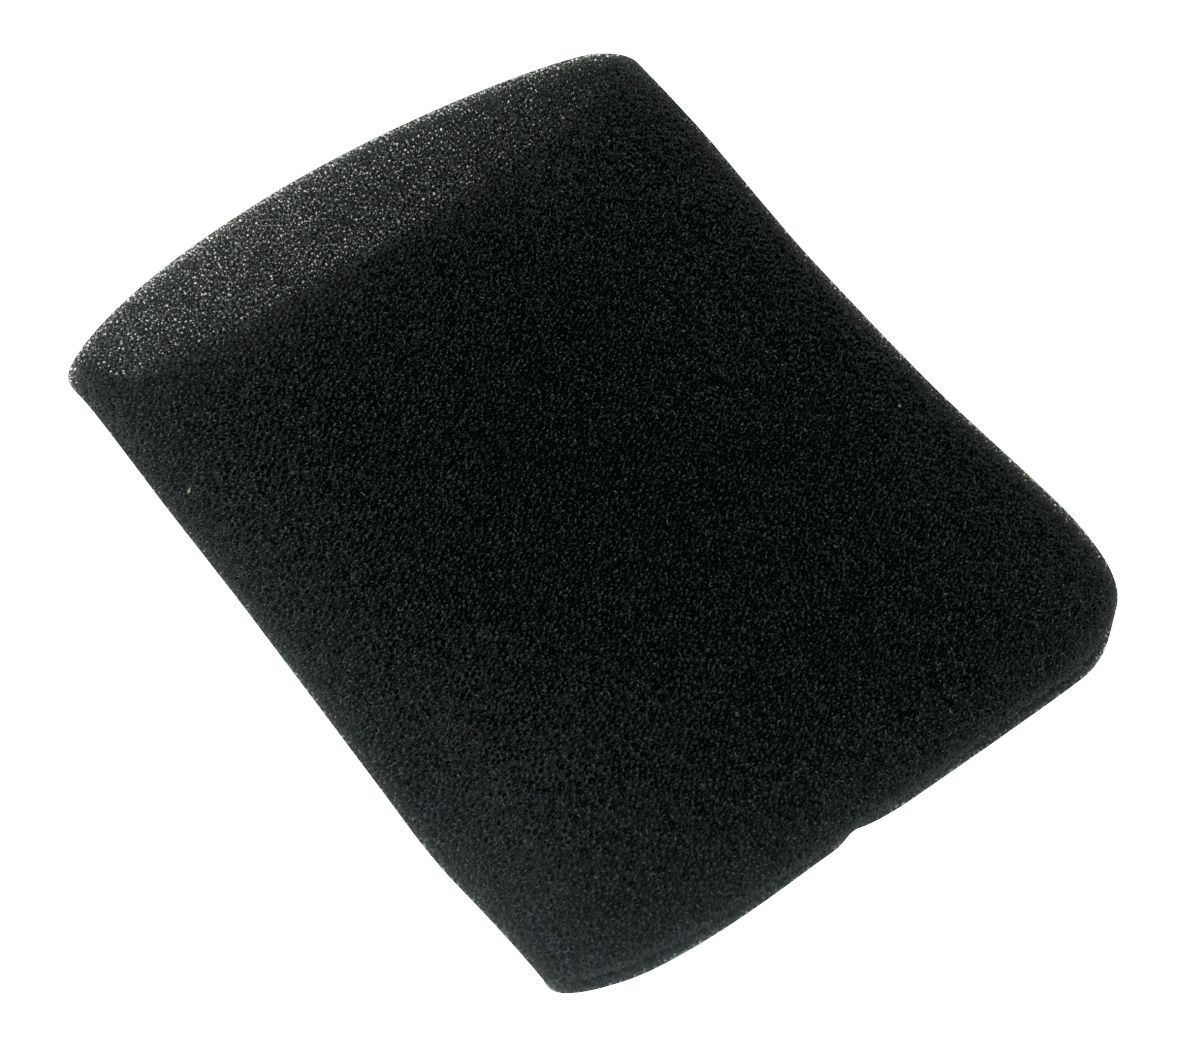 Sealey Foam Filter for PC100